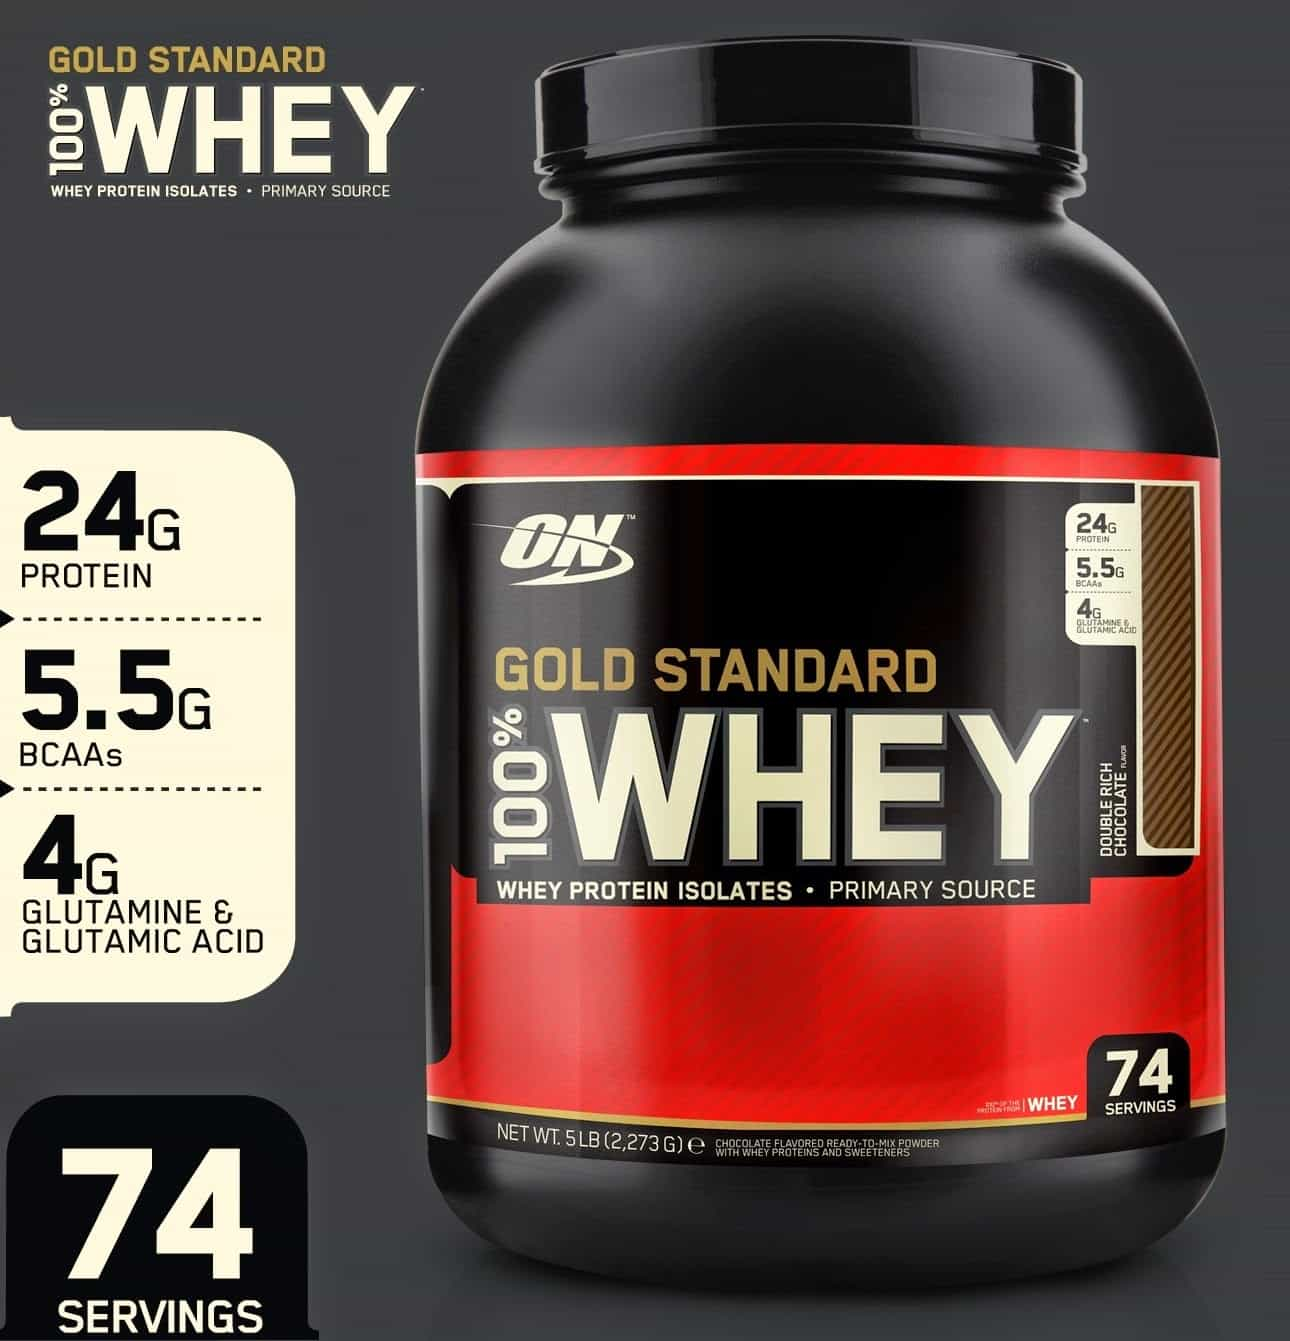 gold standard whey instructions